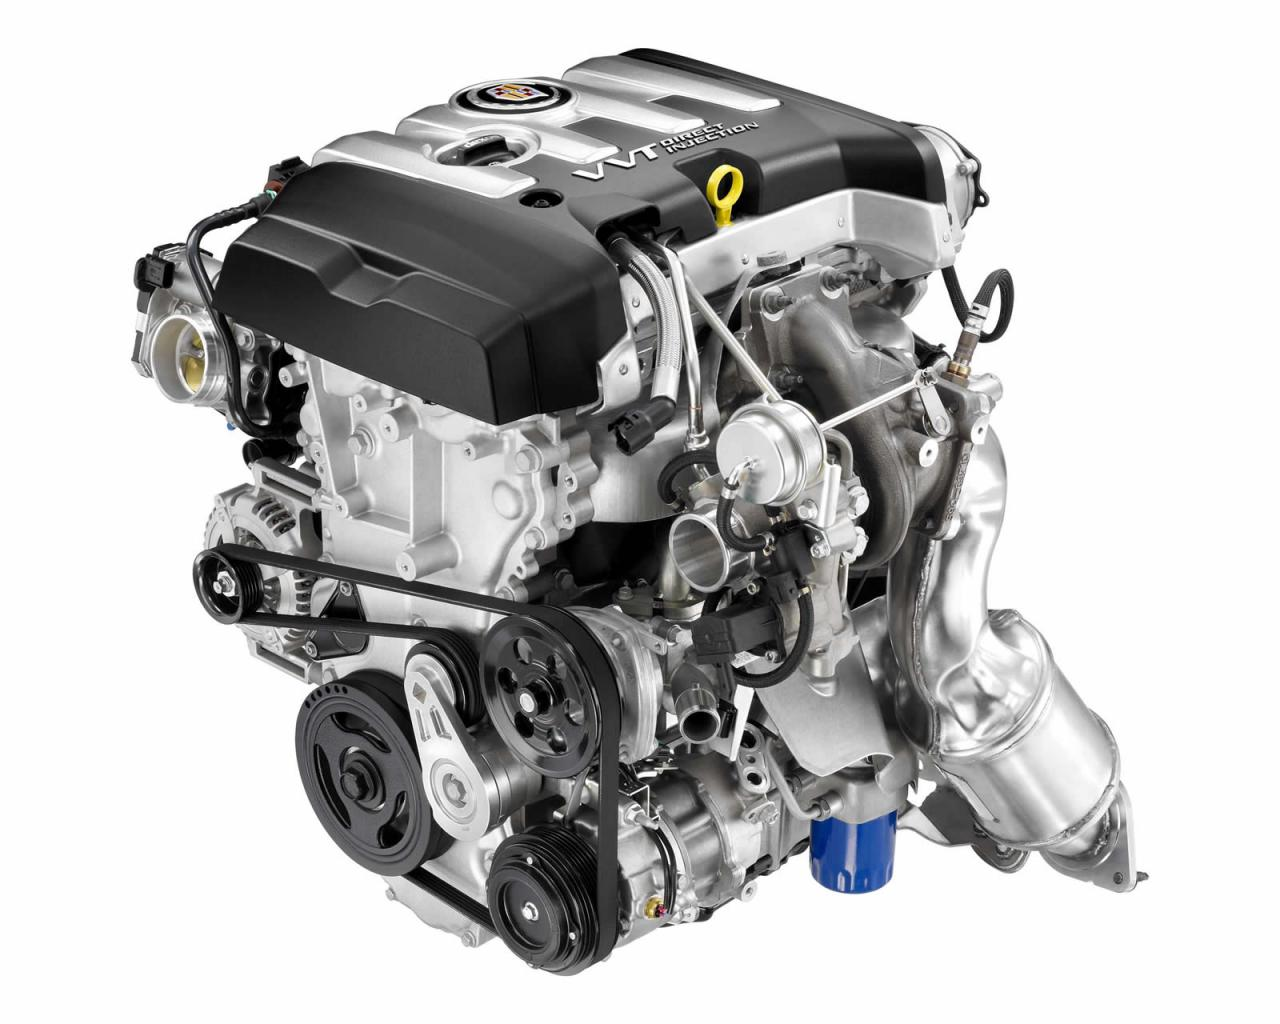 2013 Cadillac Ats 2.0 L Turbo >> GM 2.0-litre turbo engine unveiled - destined for future ...